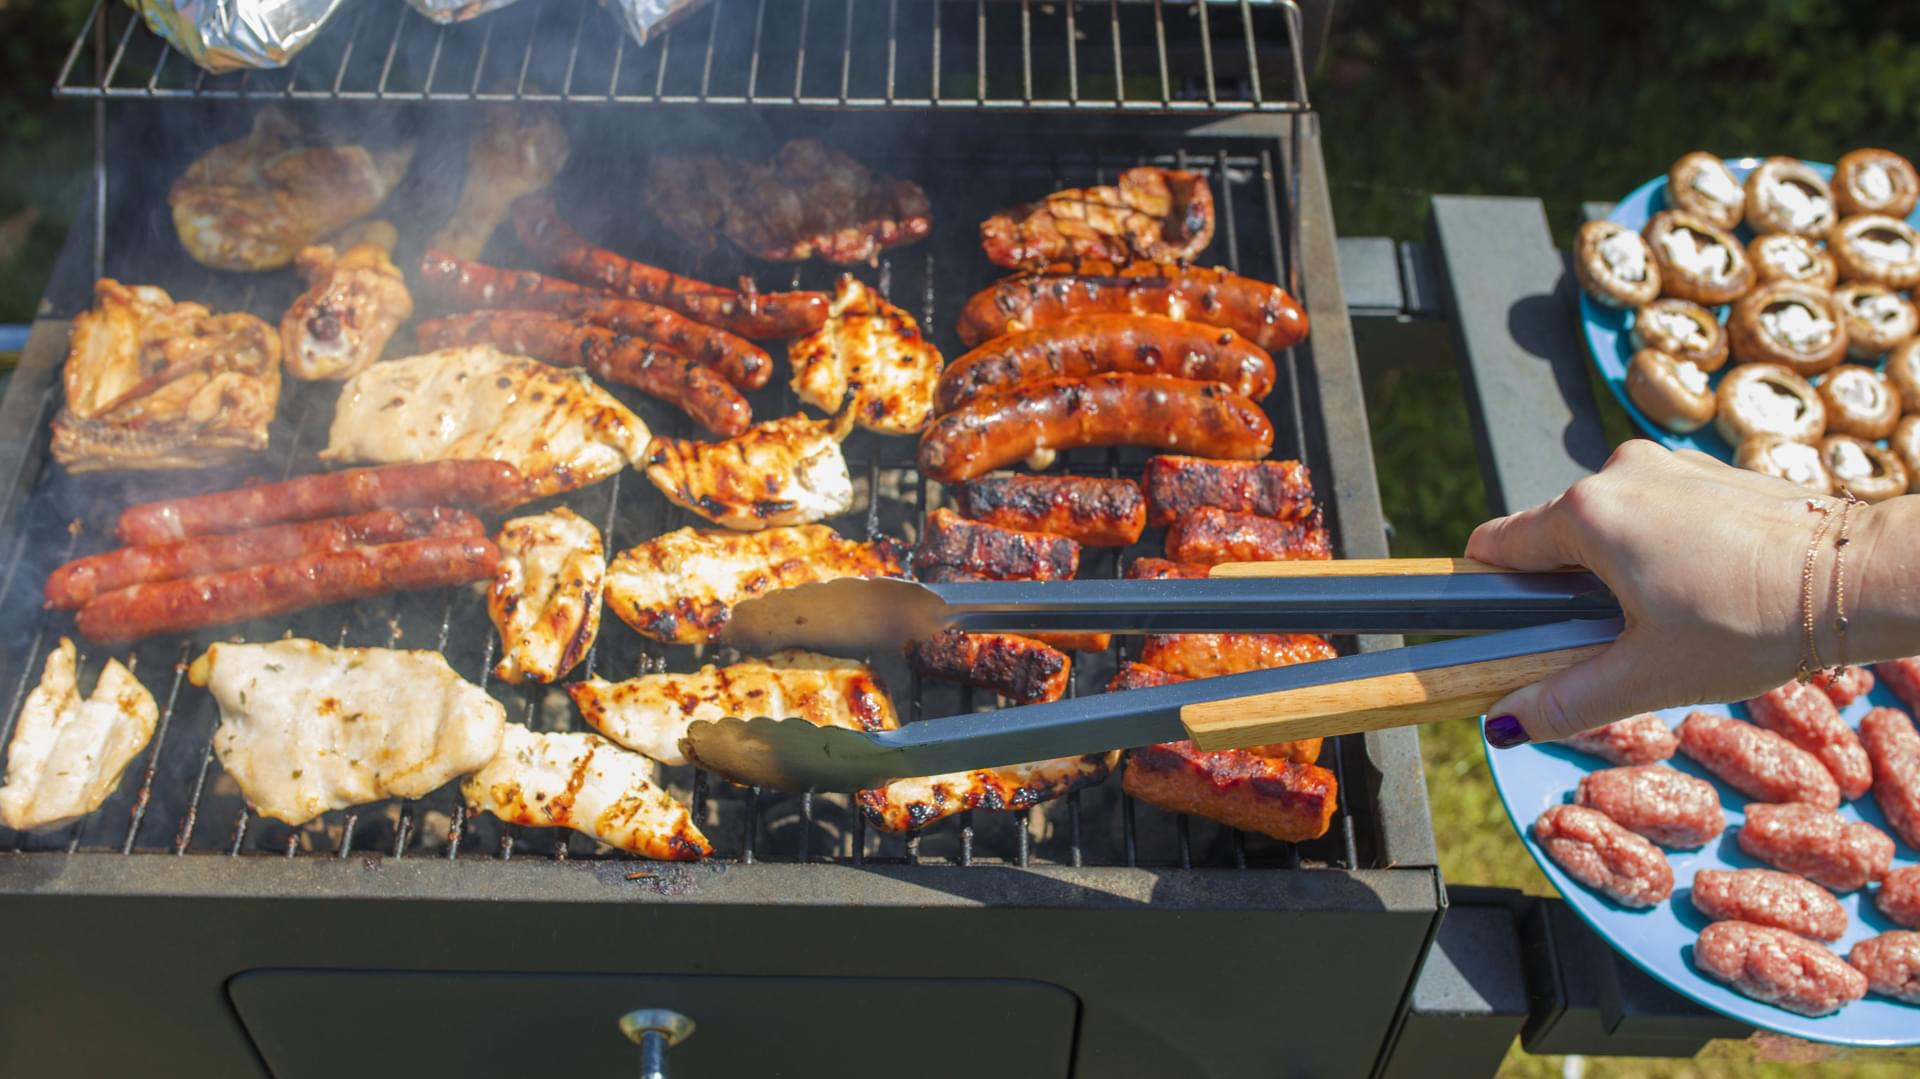 Caviness & Cates 5 Must-Haves for the Backyard Grilling Season